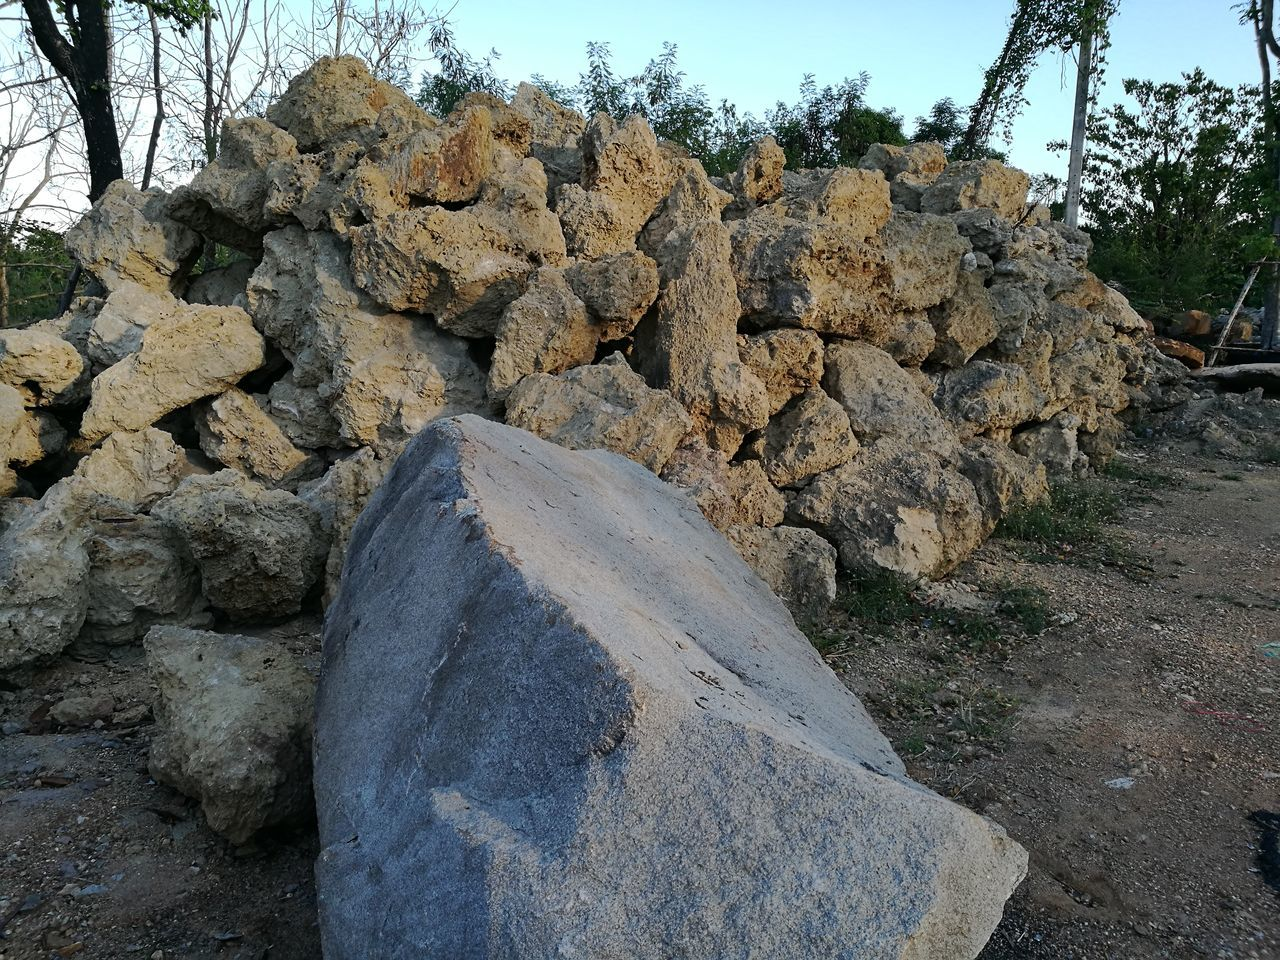 rock - object, stone - object, day, tree, no people, outdoors, rock, nature, sky, pebble, stack, beauty in nature